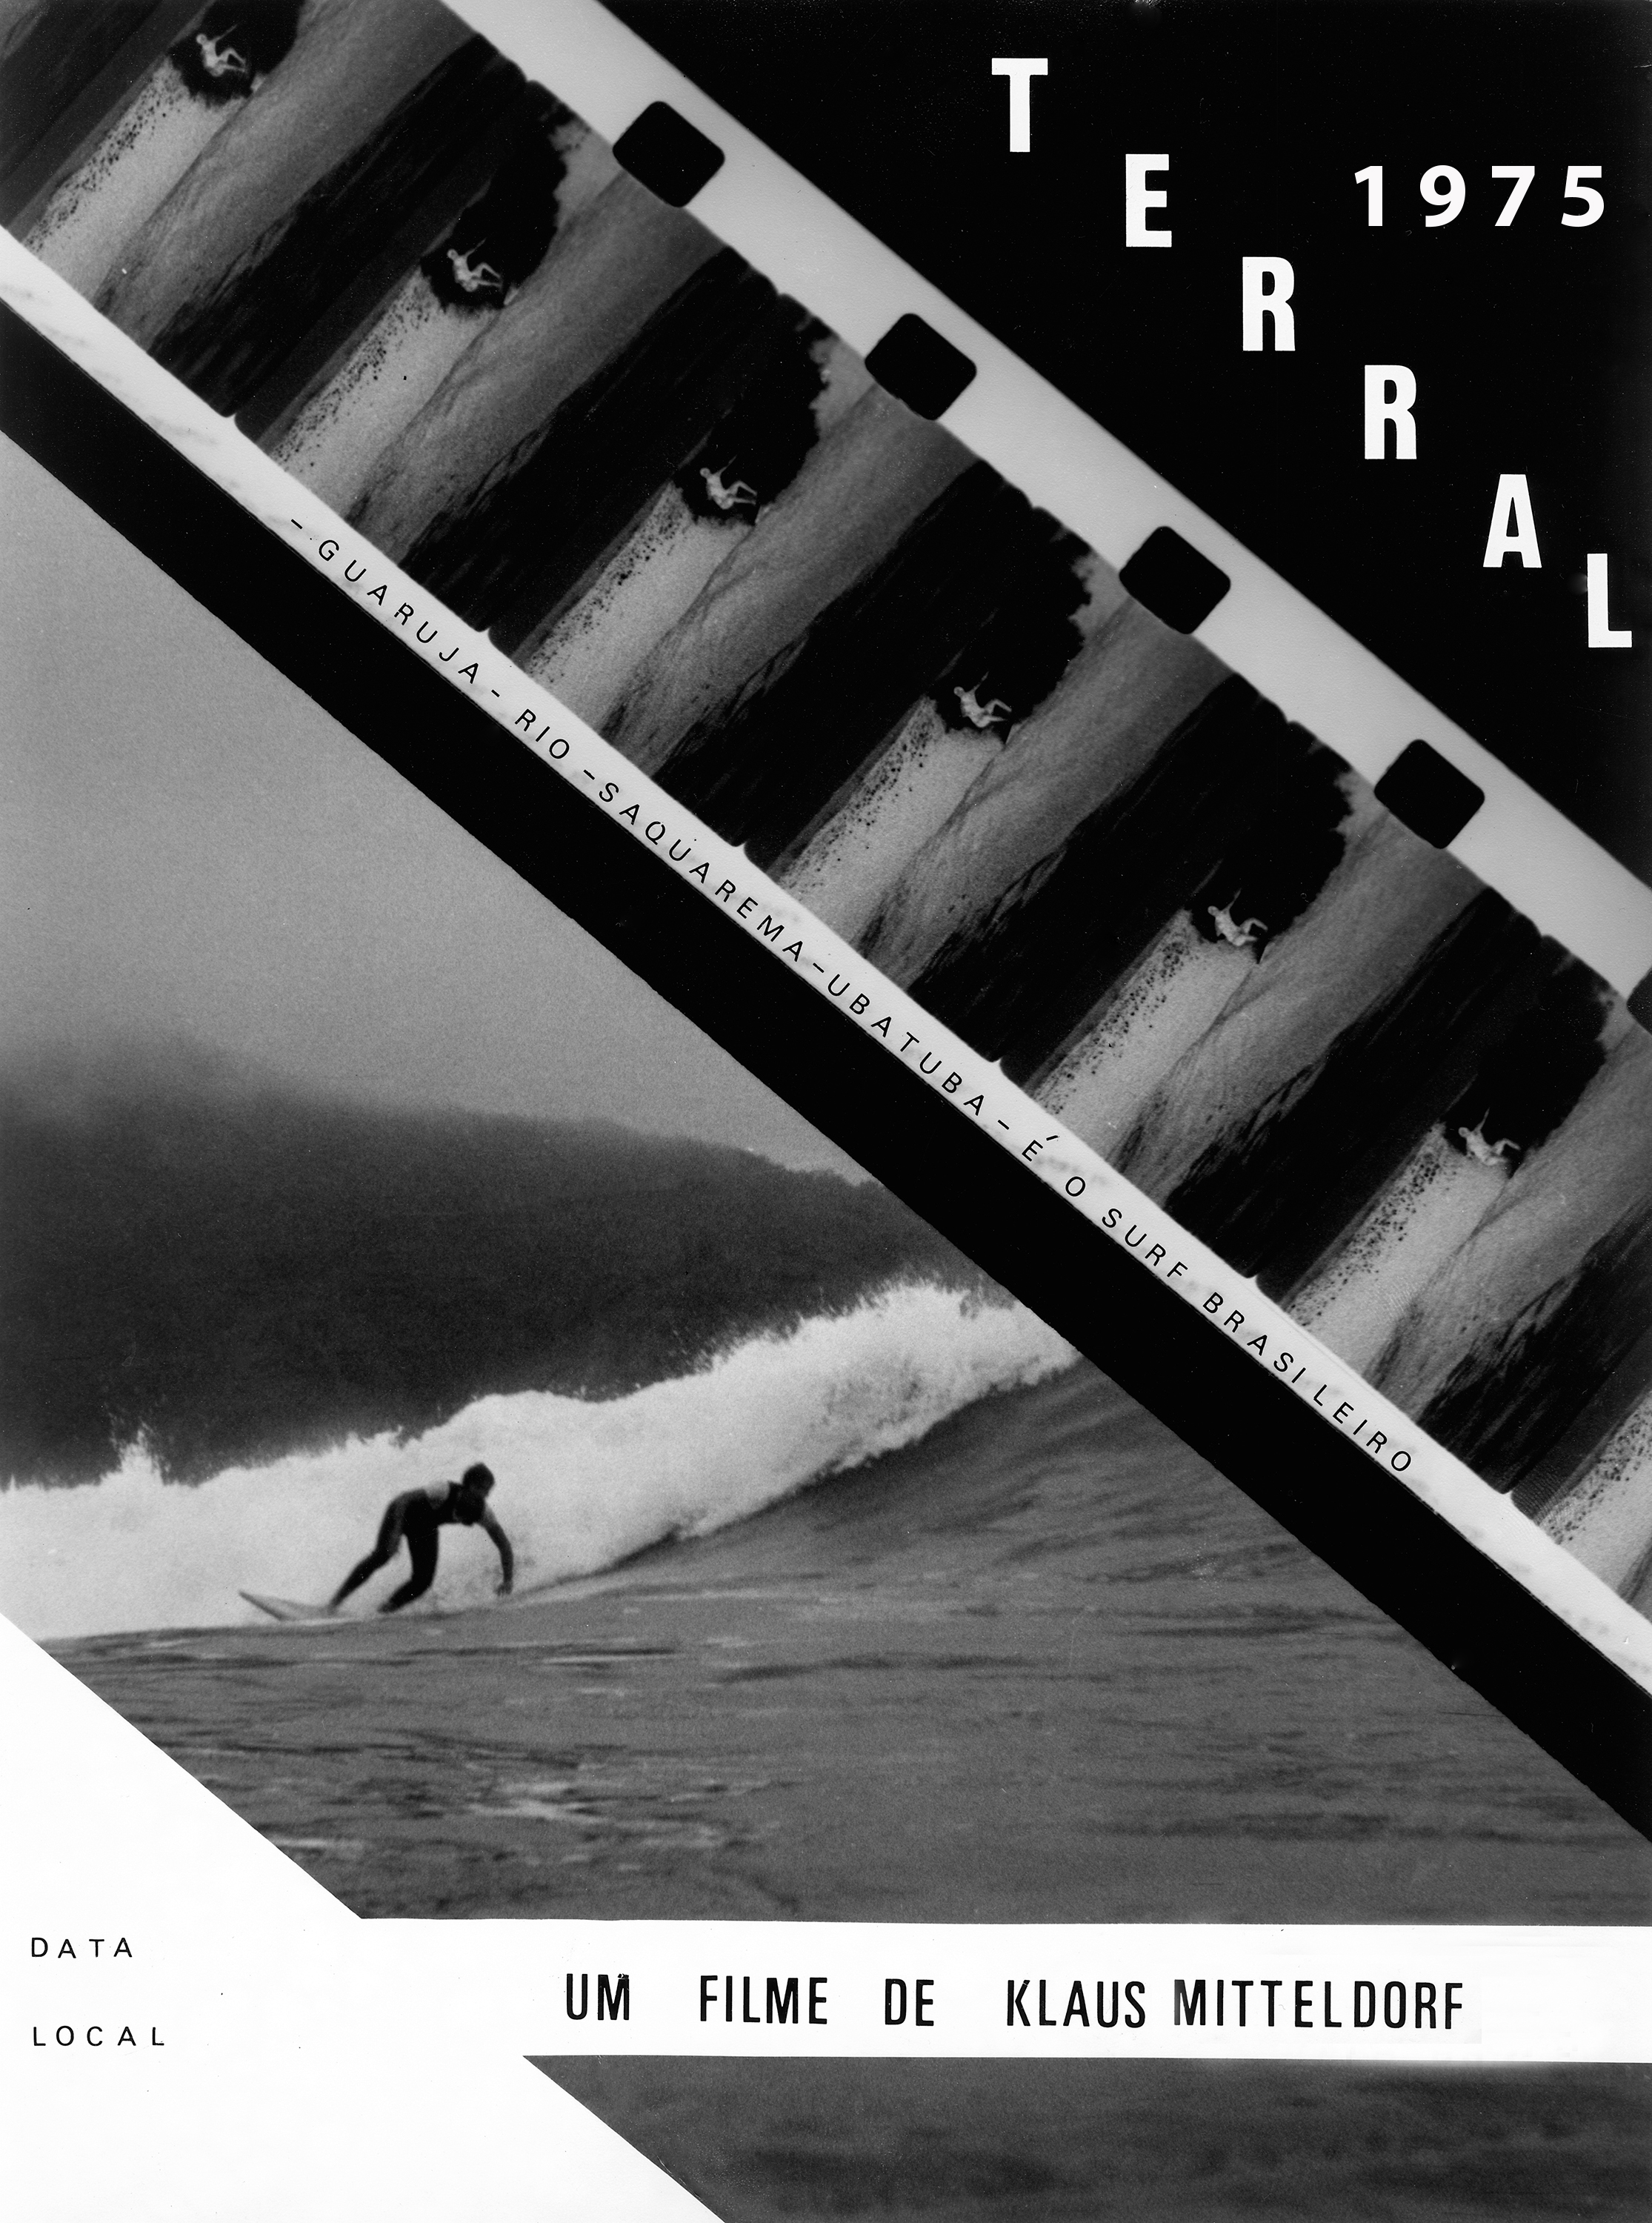 THE FIRST BRAZILIAN SUPER 8 SURF DOCUMENTARY